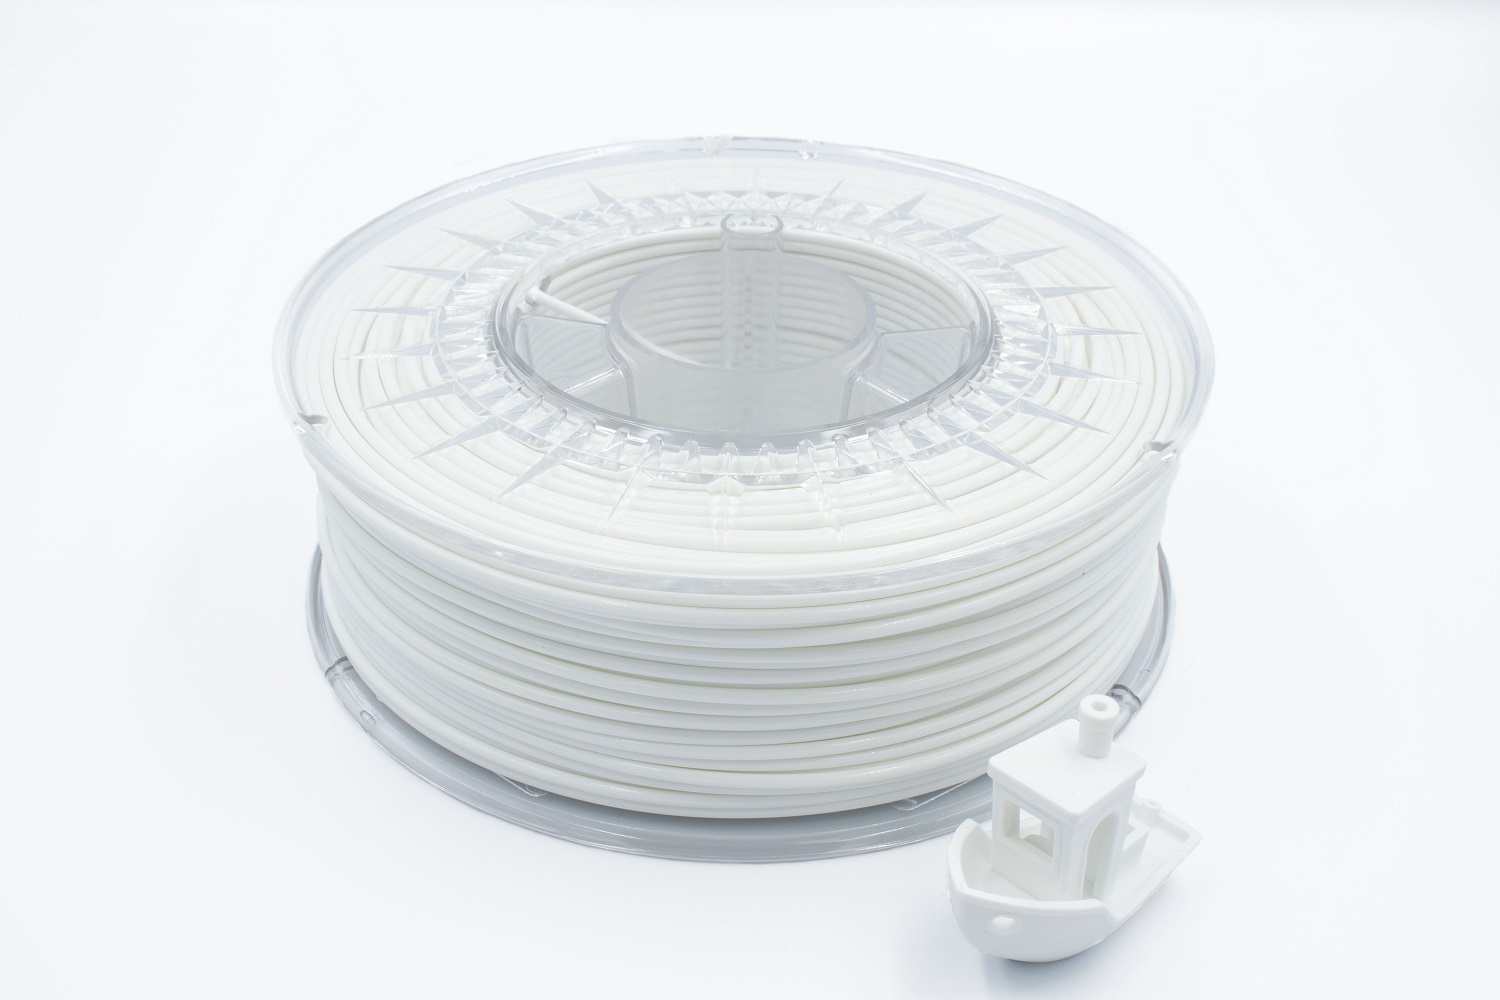 More info on White Wedding Filament